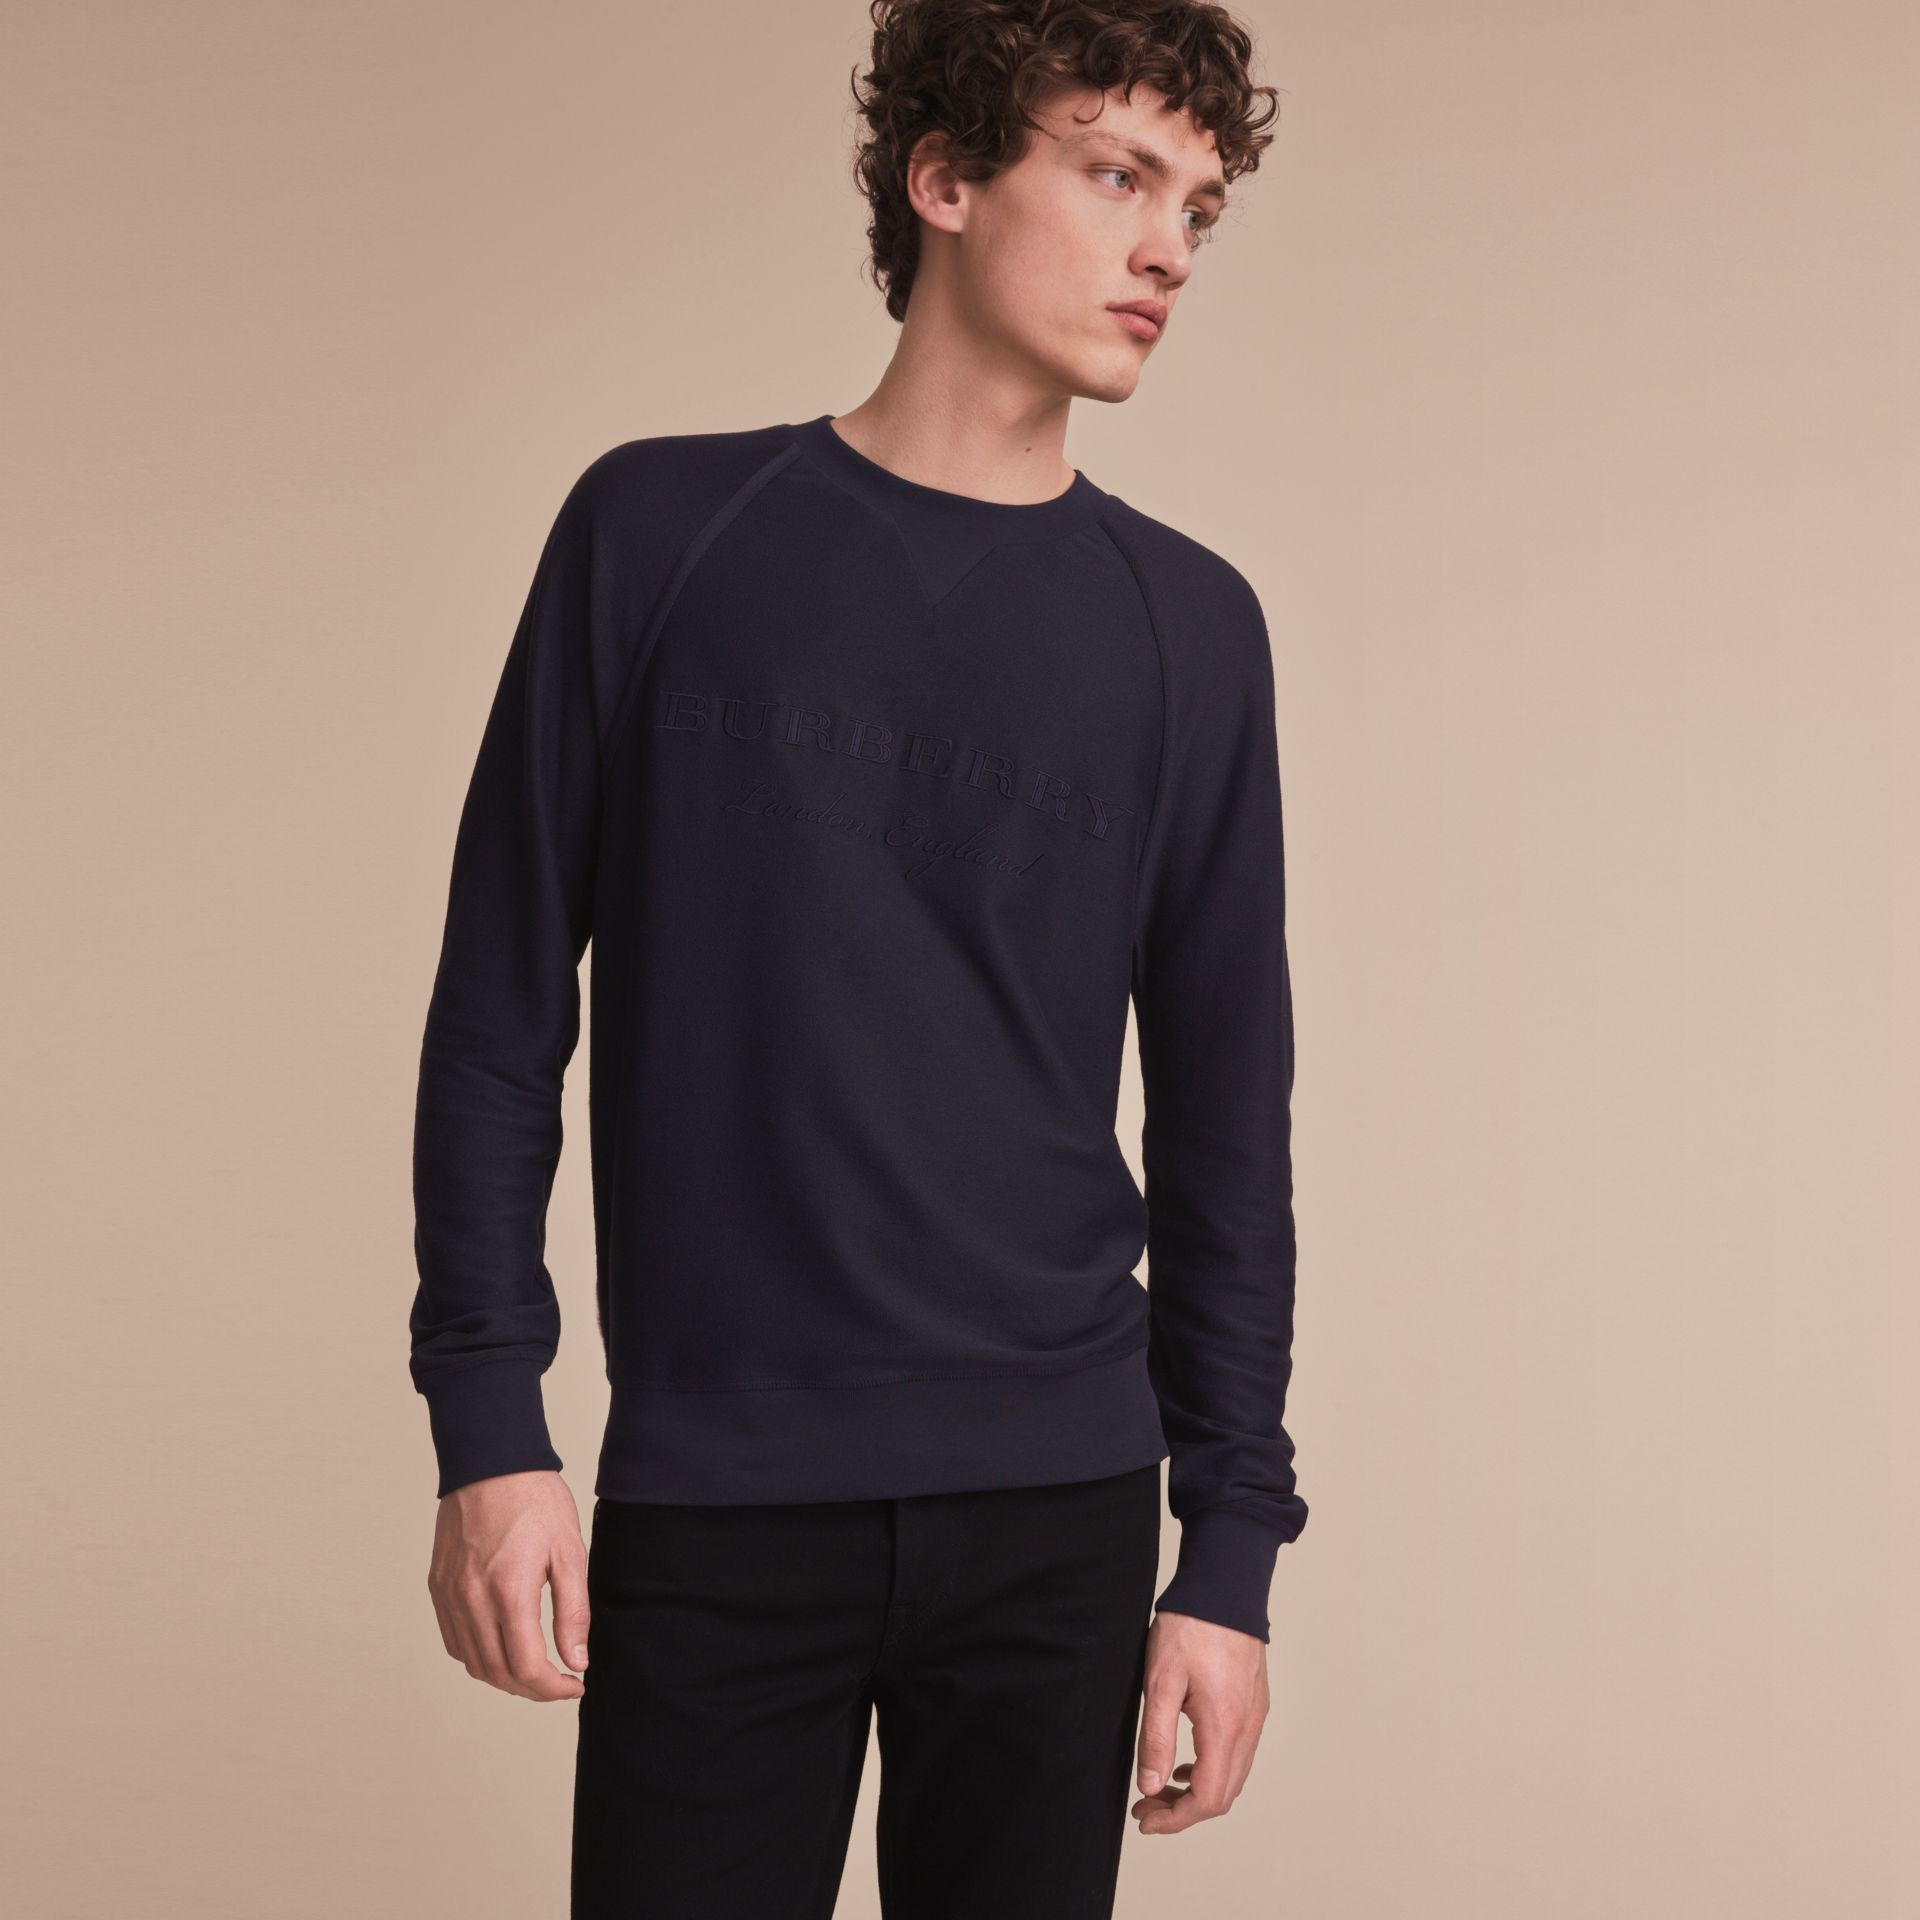 Embroidered Motif Cotton-blend Jersey Sweatshirt in Navy - Men | Burberry Australia - gallery image 6